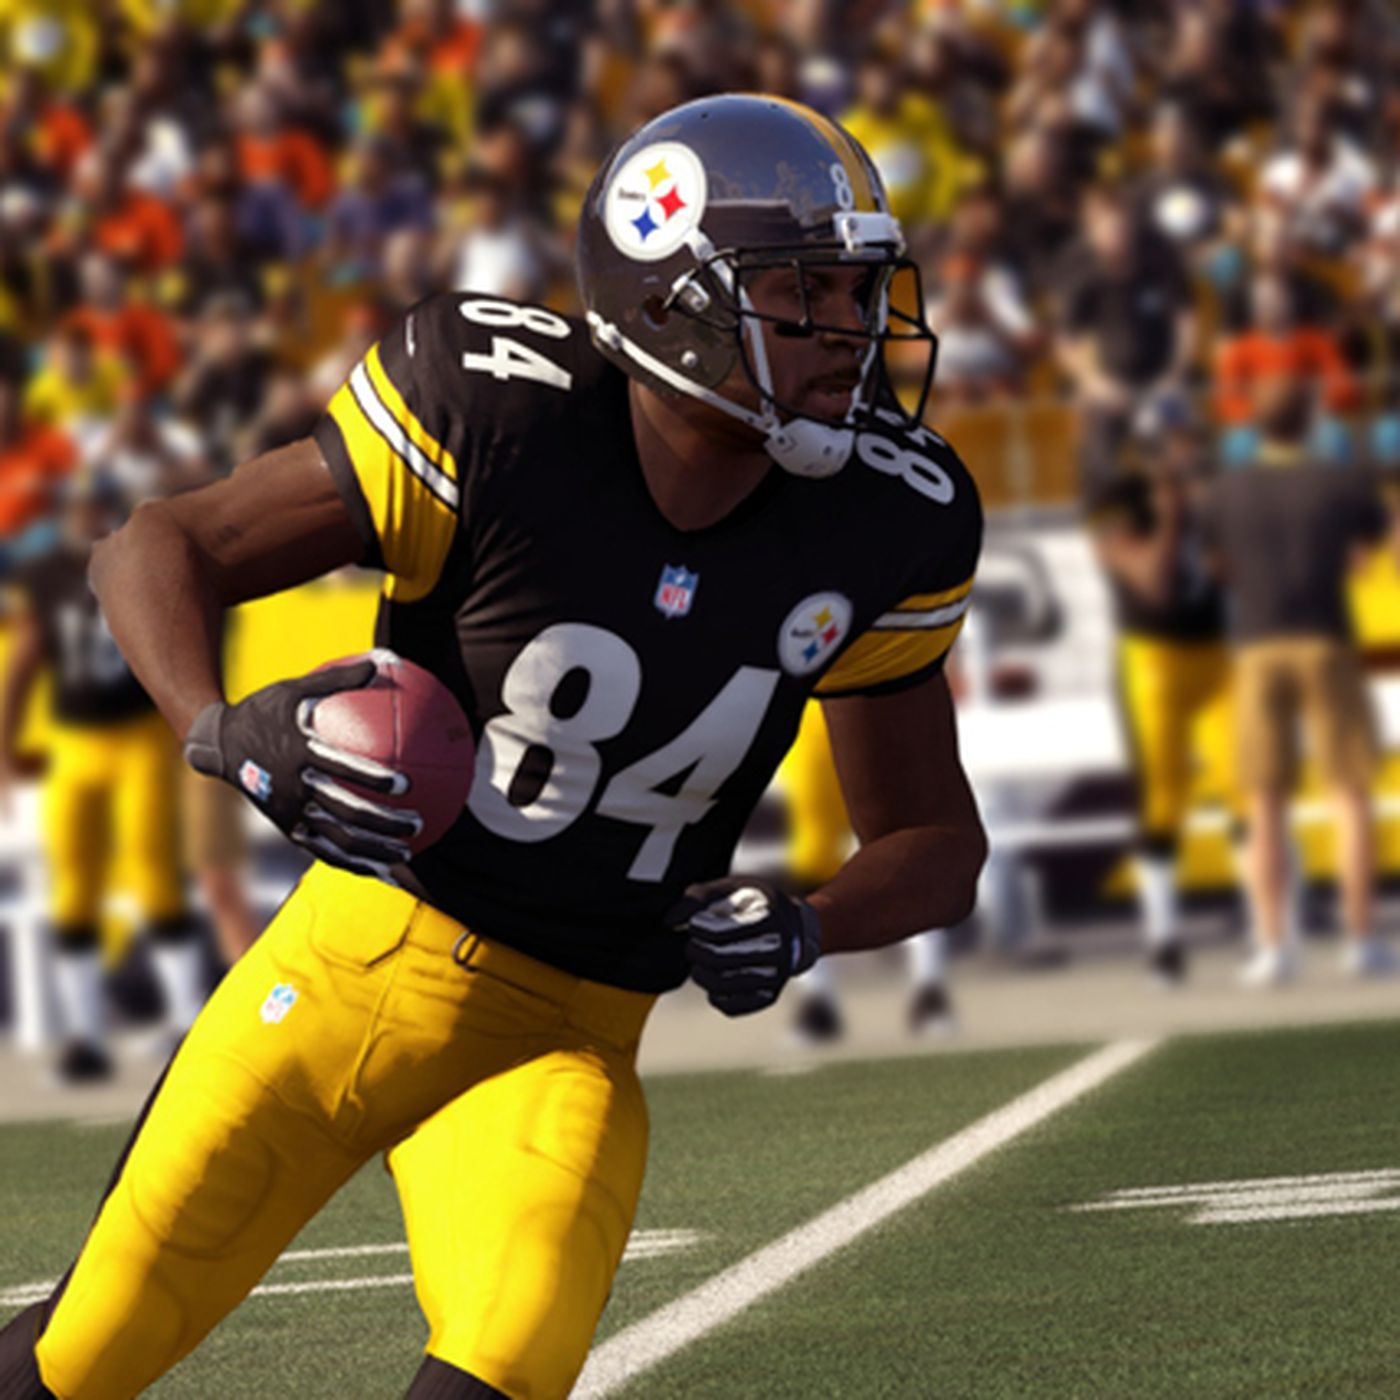 b99d90c23f8 Pittsburgh Steelers Madden 15 ratings released - Behind the Steel ...